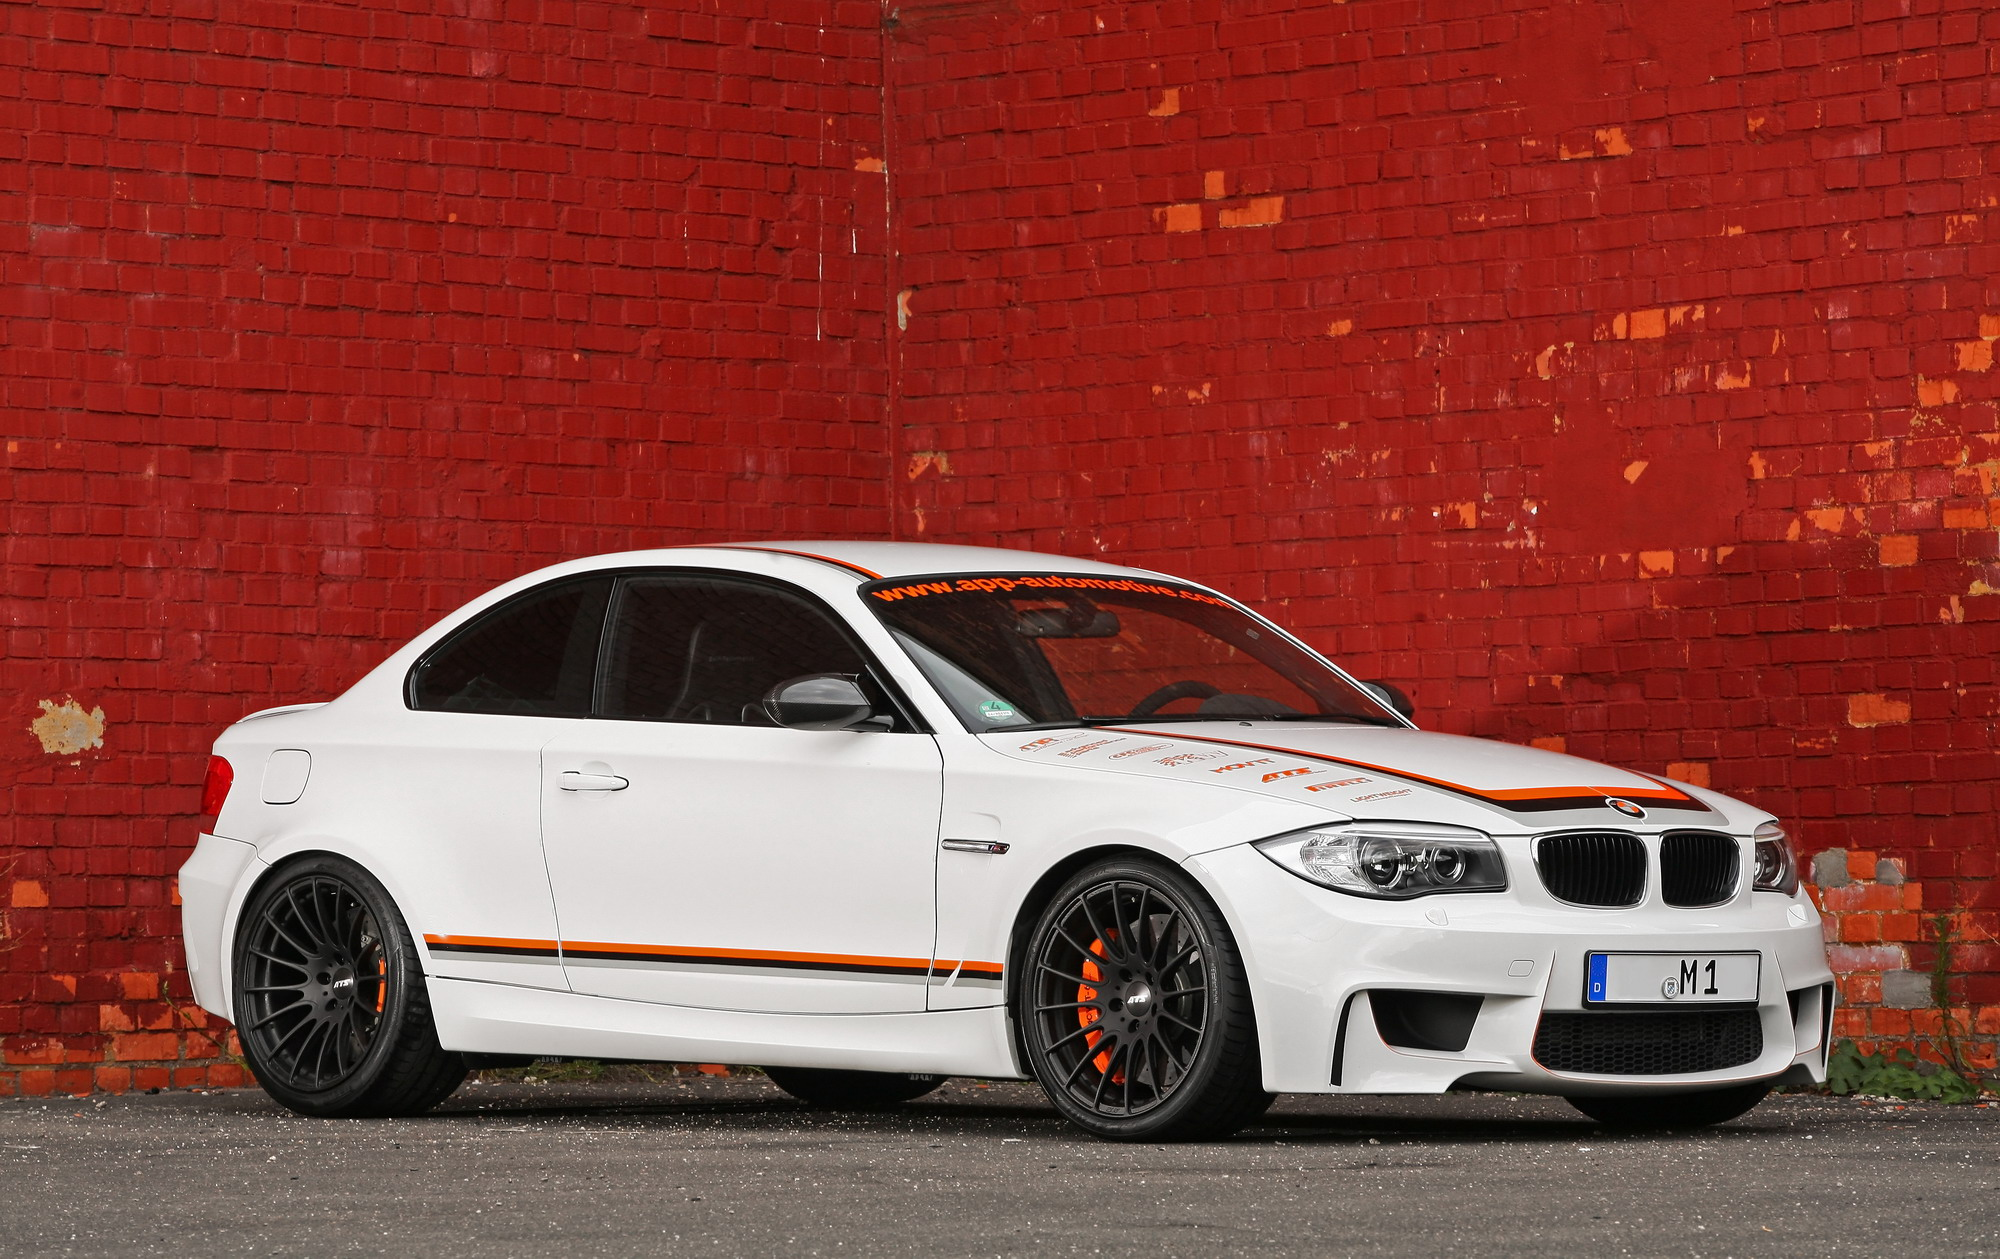 2012 bmw 1 series m coupe by app europe review top speed. Black Bedroom Furniture Sets. Home Design Ideas